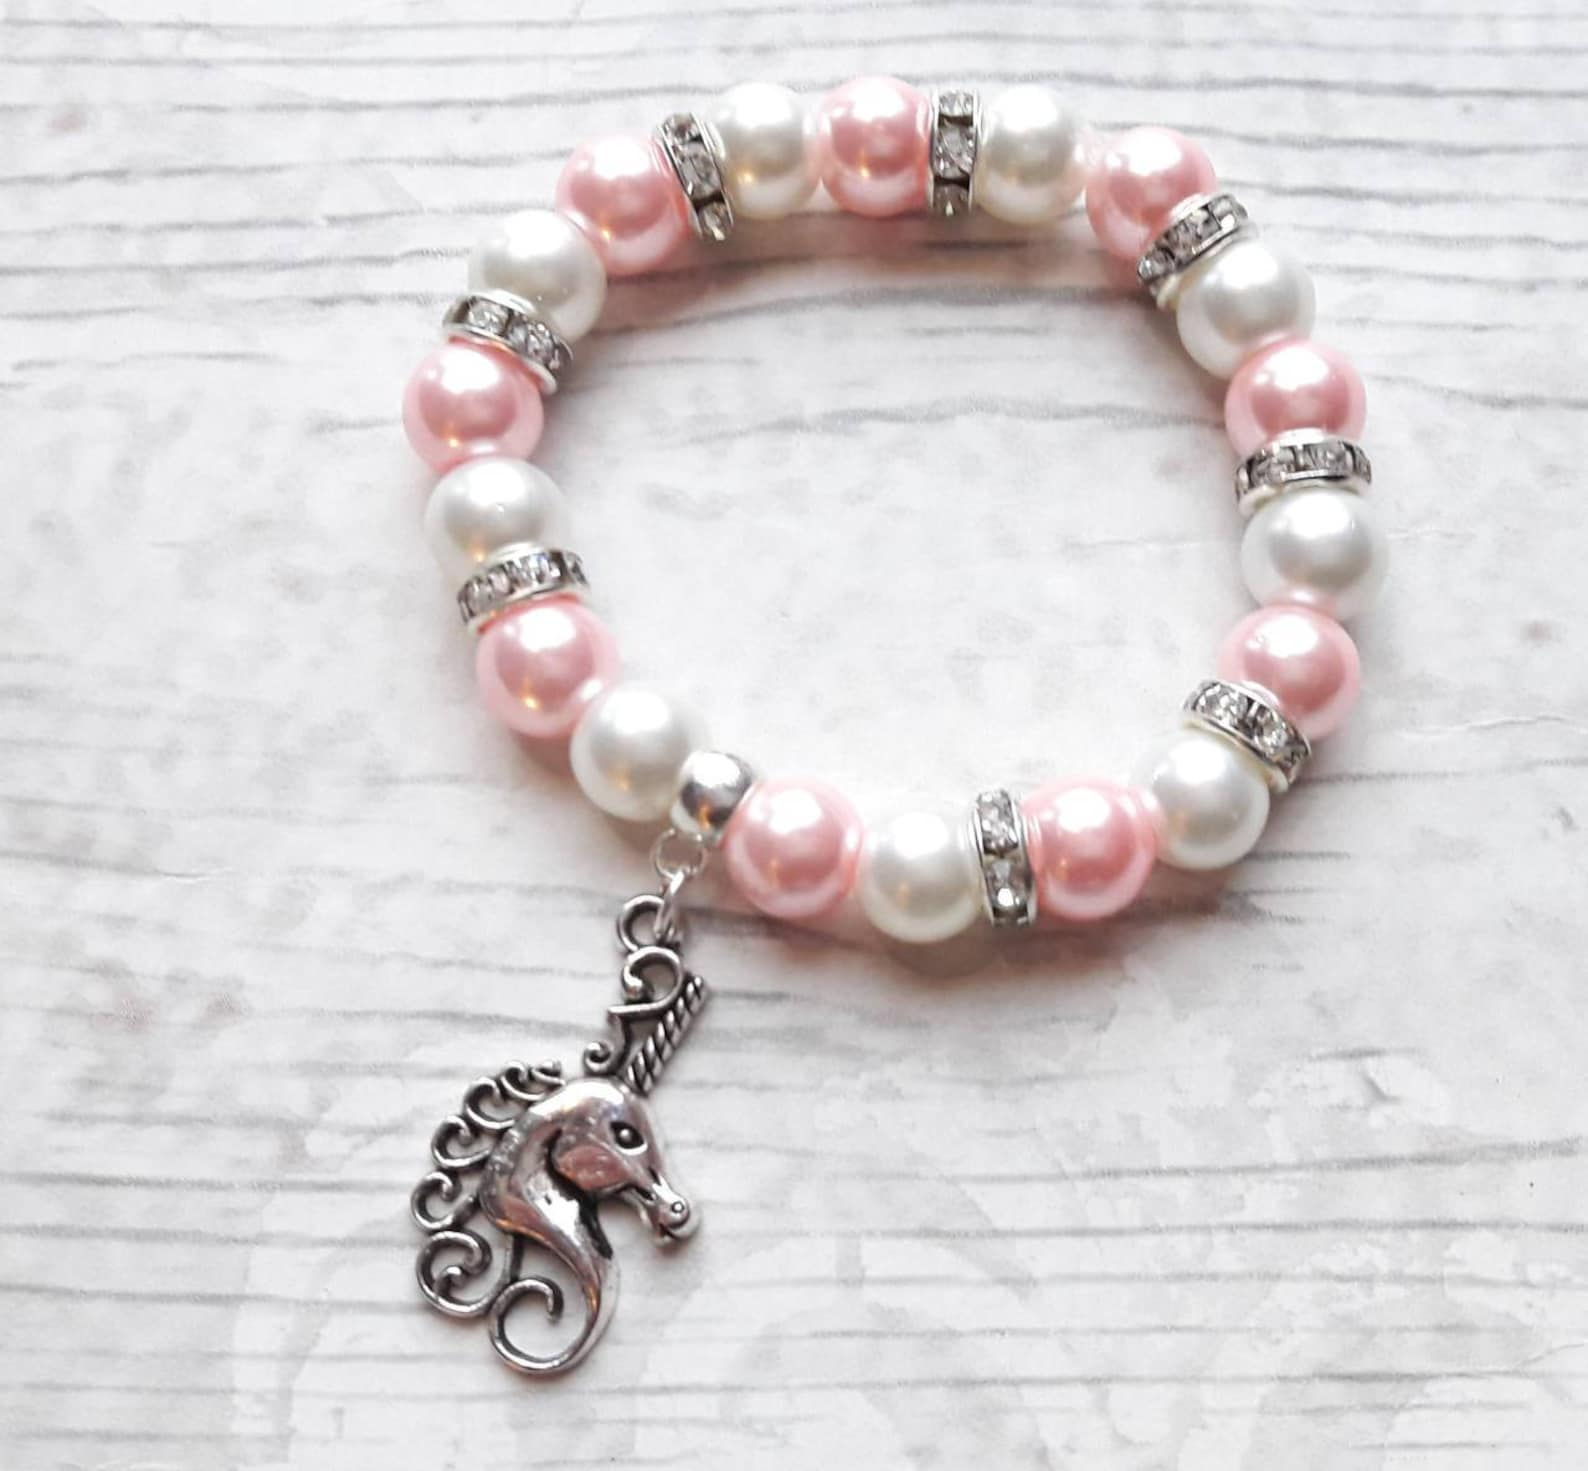 unicorn bracelet, fairytale jewellery, fantasy jewelry, ballet present, gift for girls, friendship bracelet, charm beaded bracel